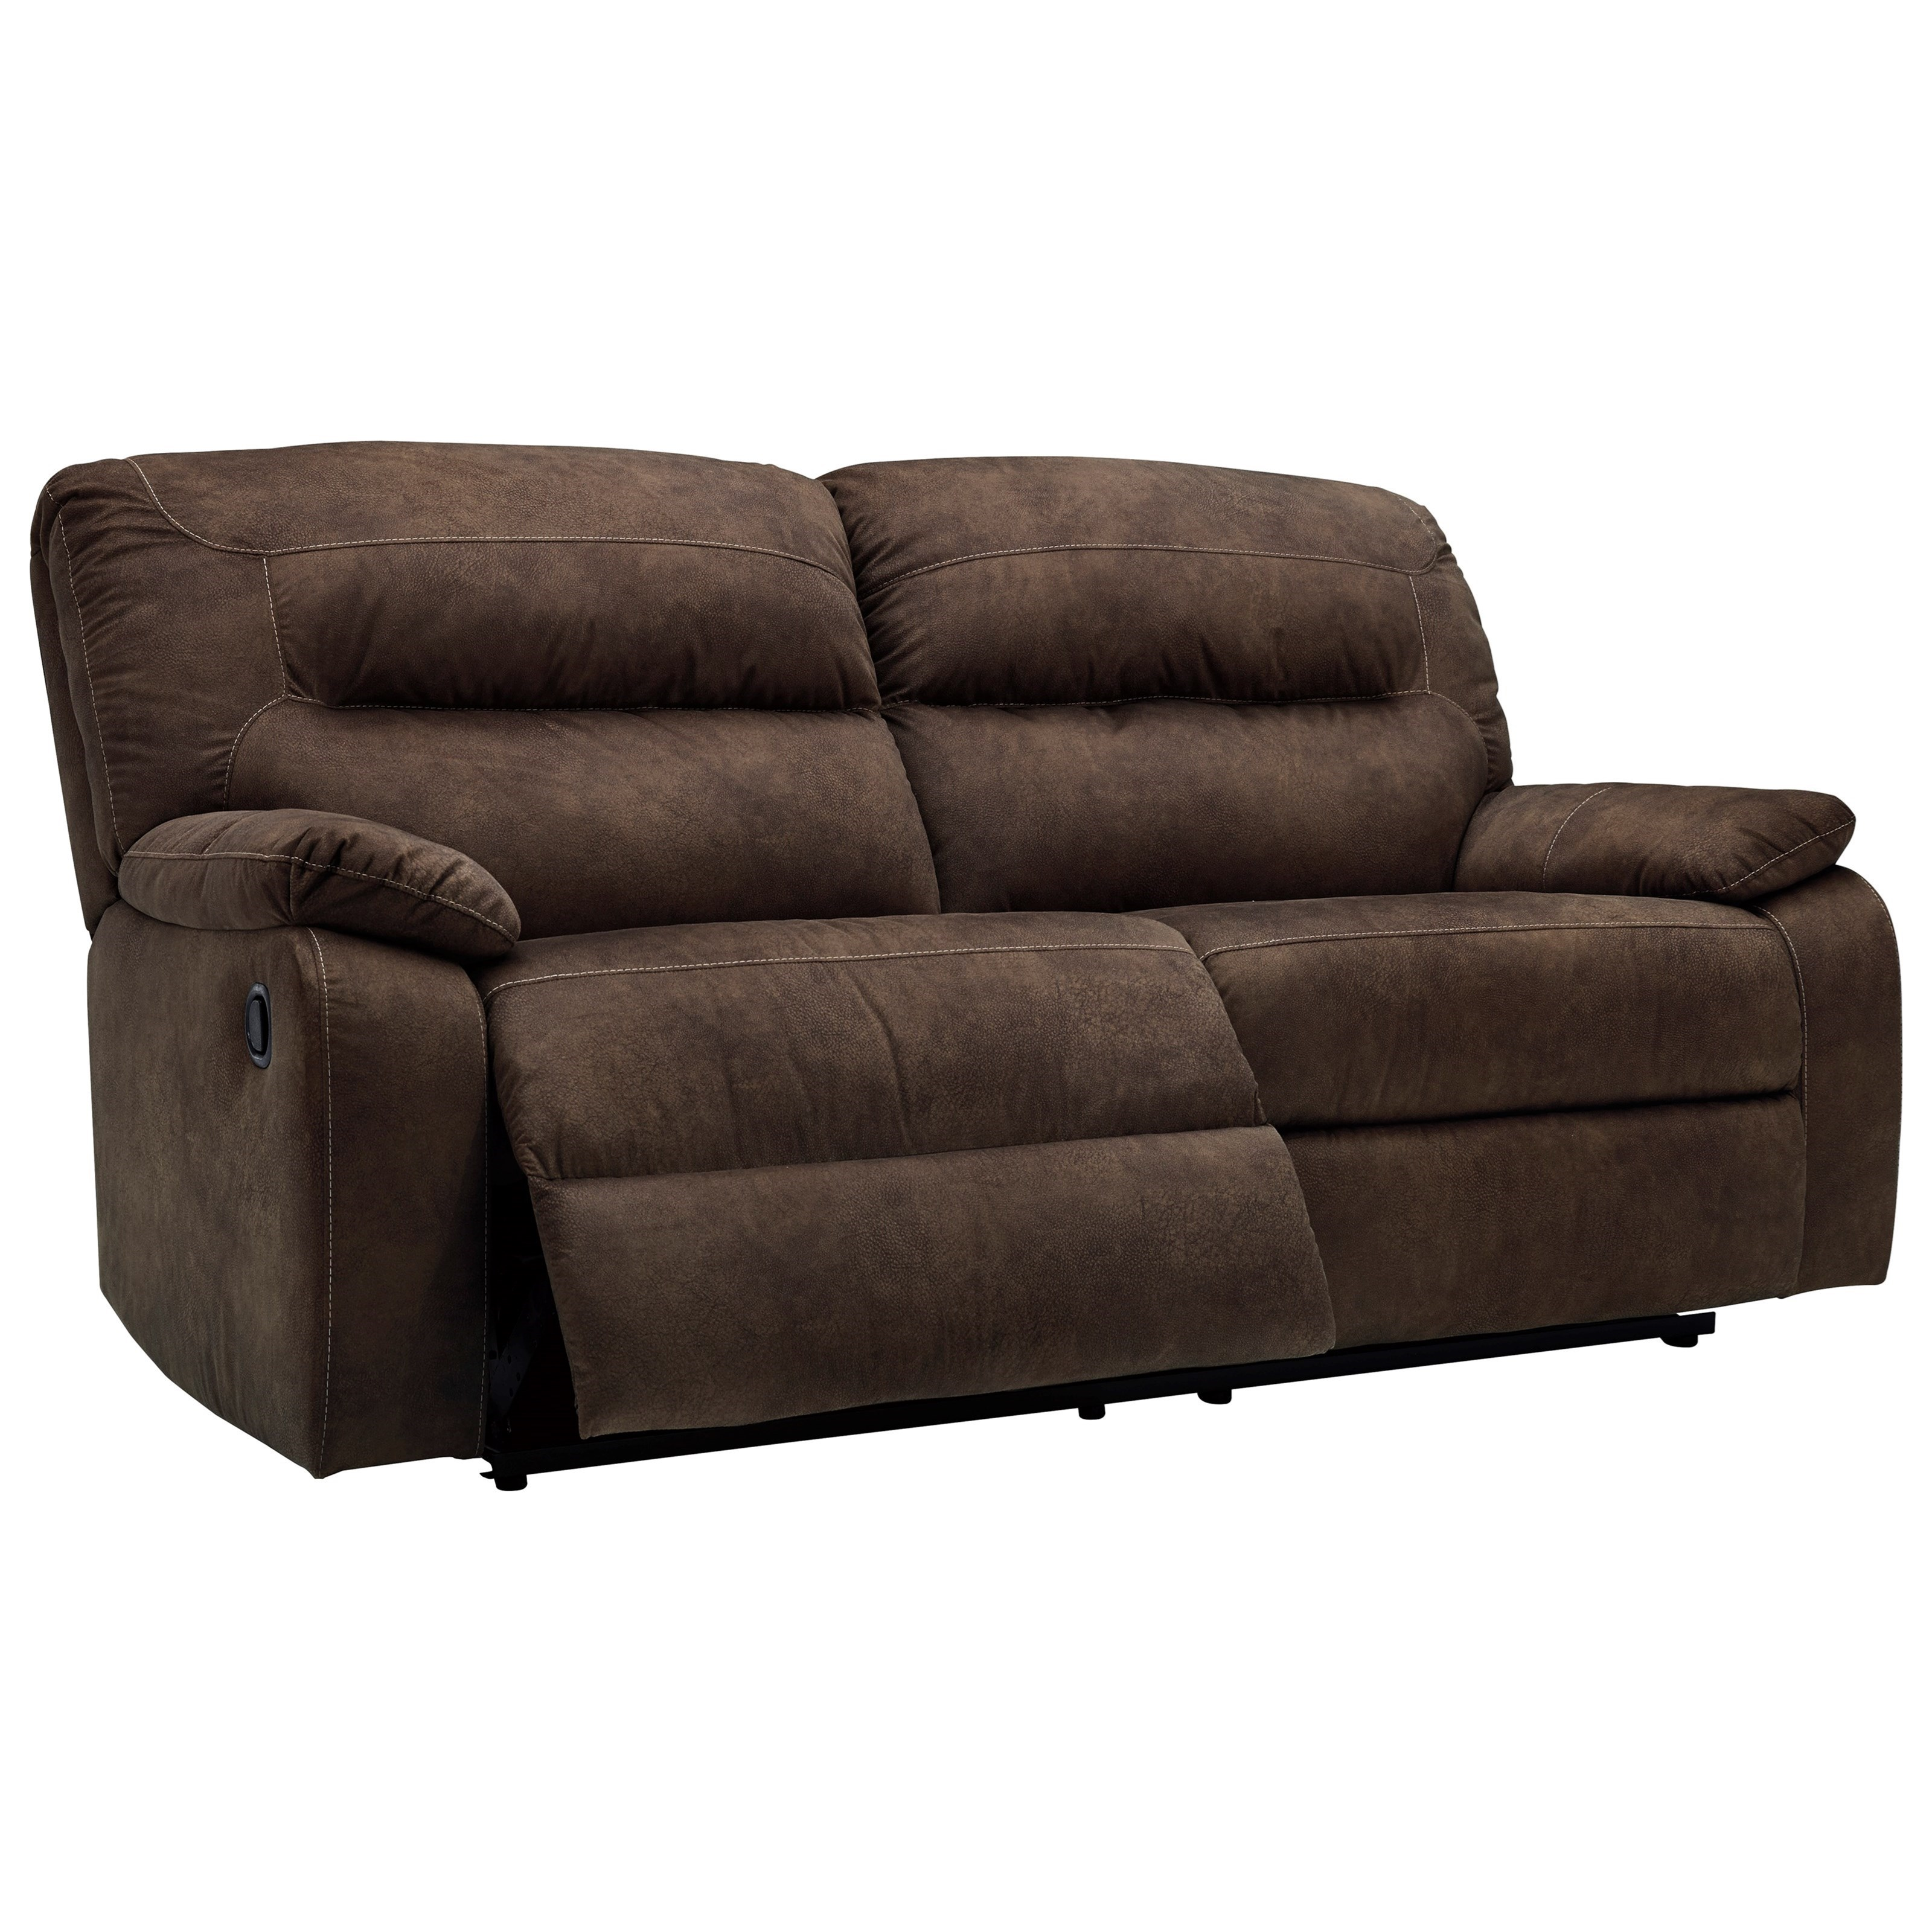 Bolzano 2 Seat Reclining Sofa by Signature Design by Ashley at Beck's Furniture